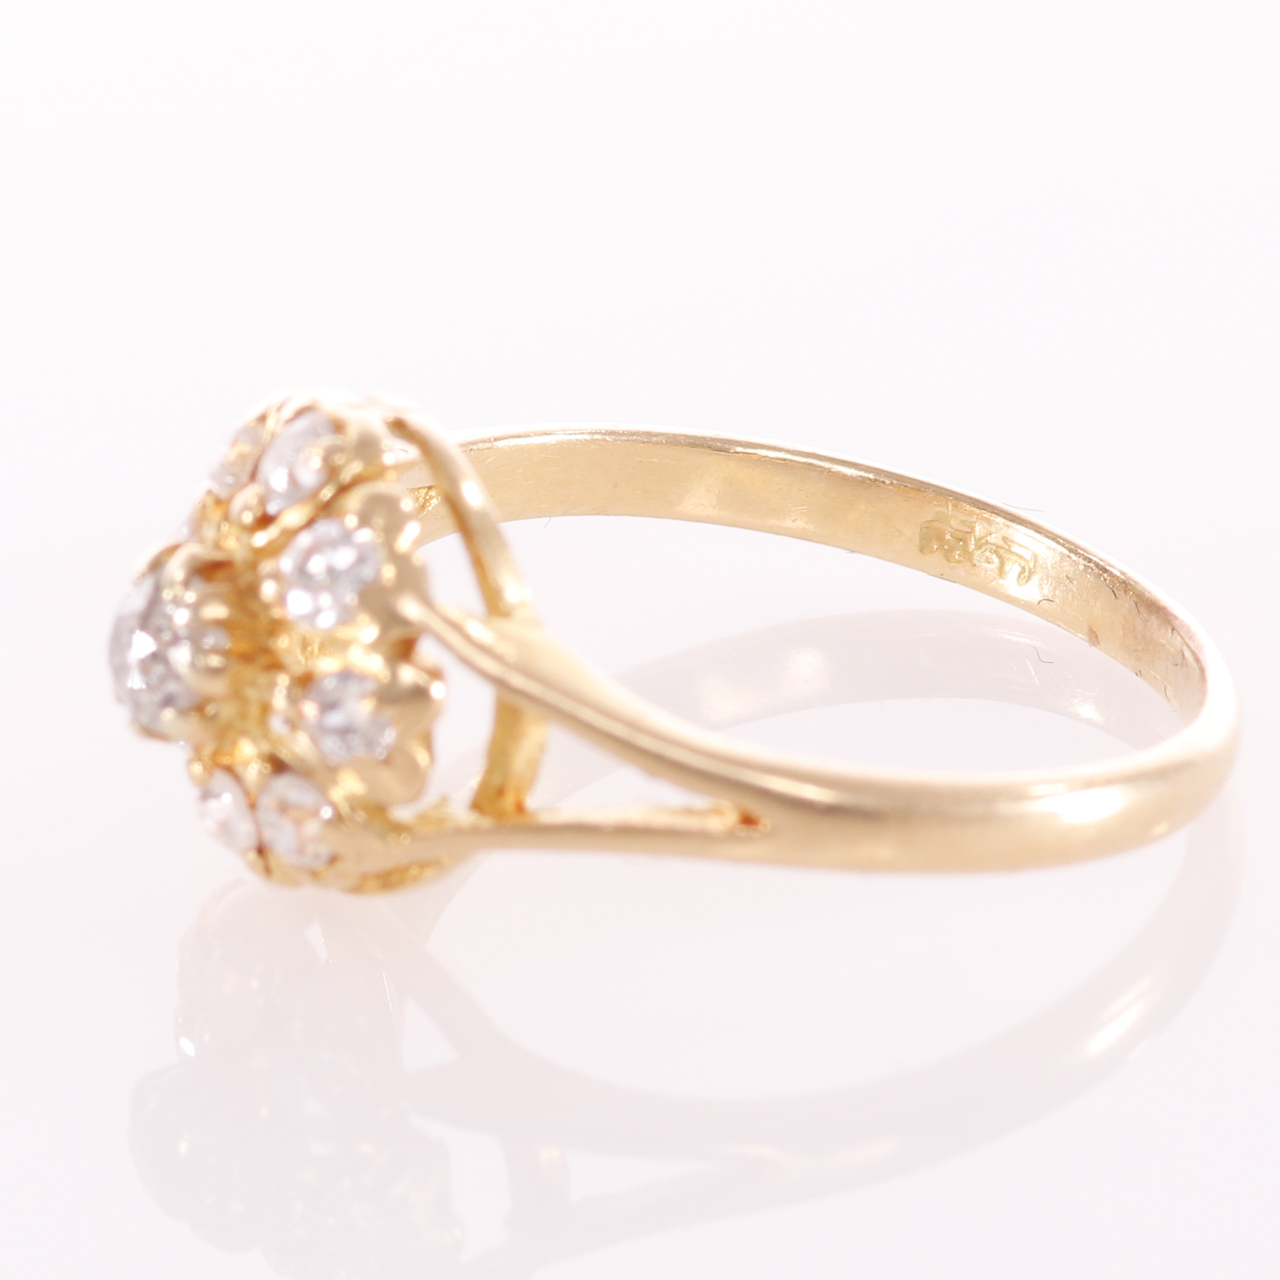 18ct Gold Rose Cut 0.35ct Diamond Cluster Ring - Image 5 of 8